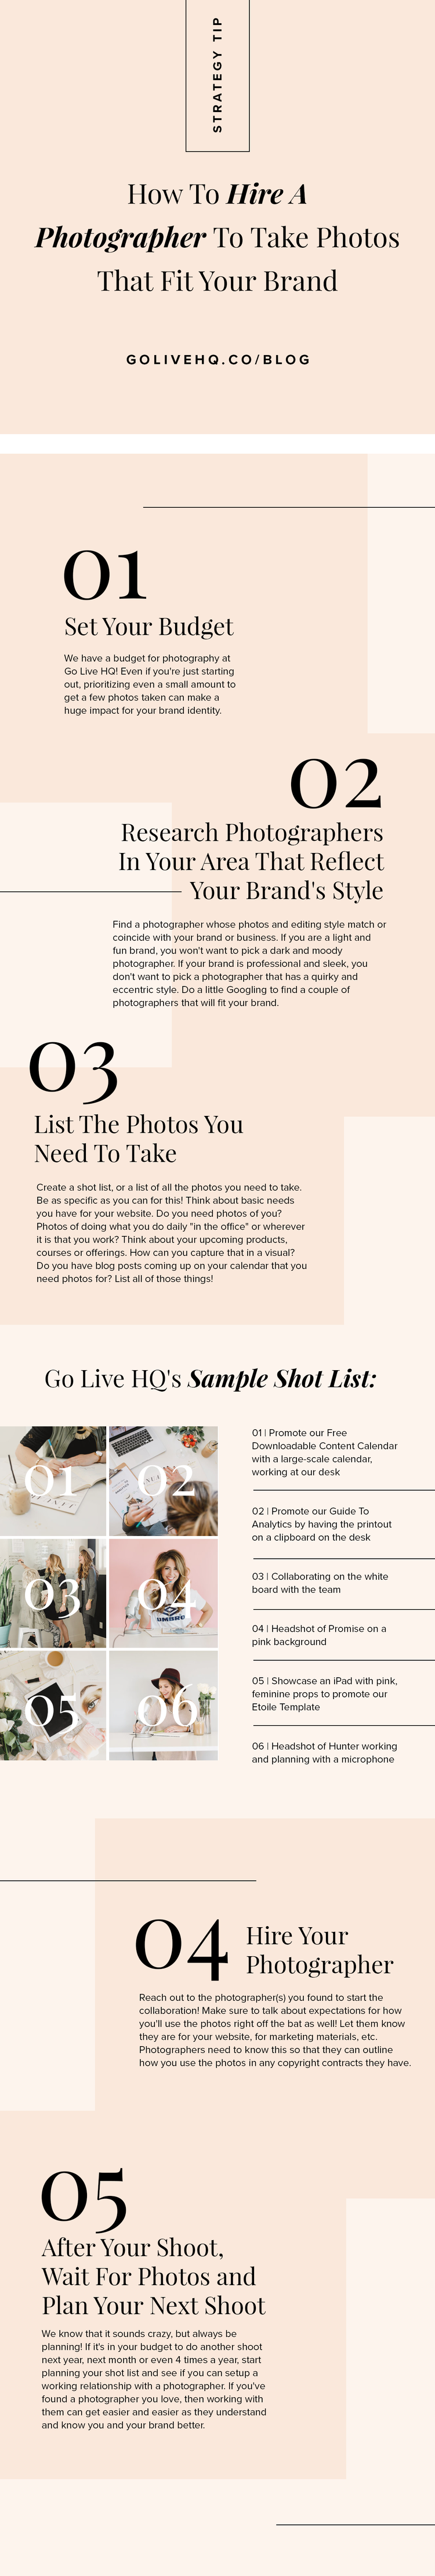 How+To+Hire+A+Photographer+To+Take+Photos+That+Fit+Your+Brand+_+Go+Live+HQ.png